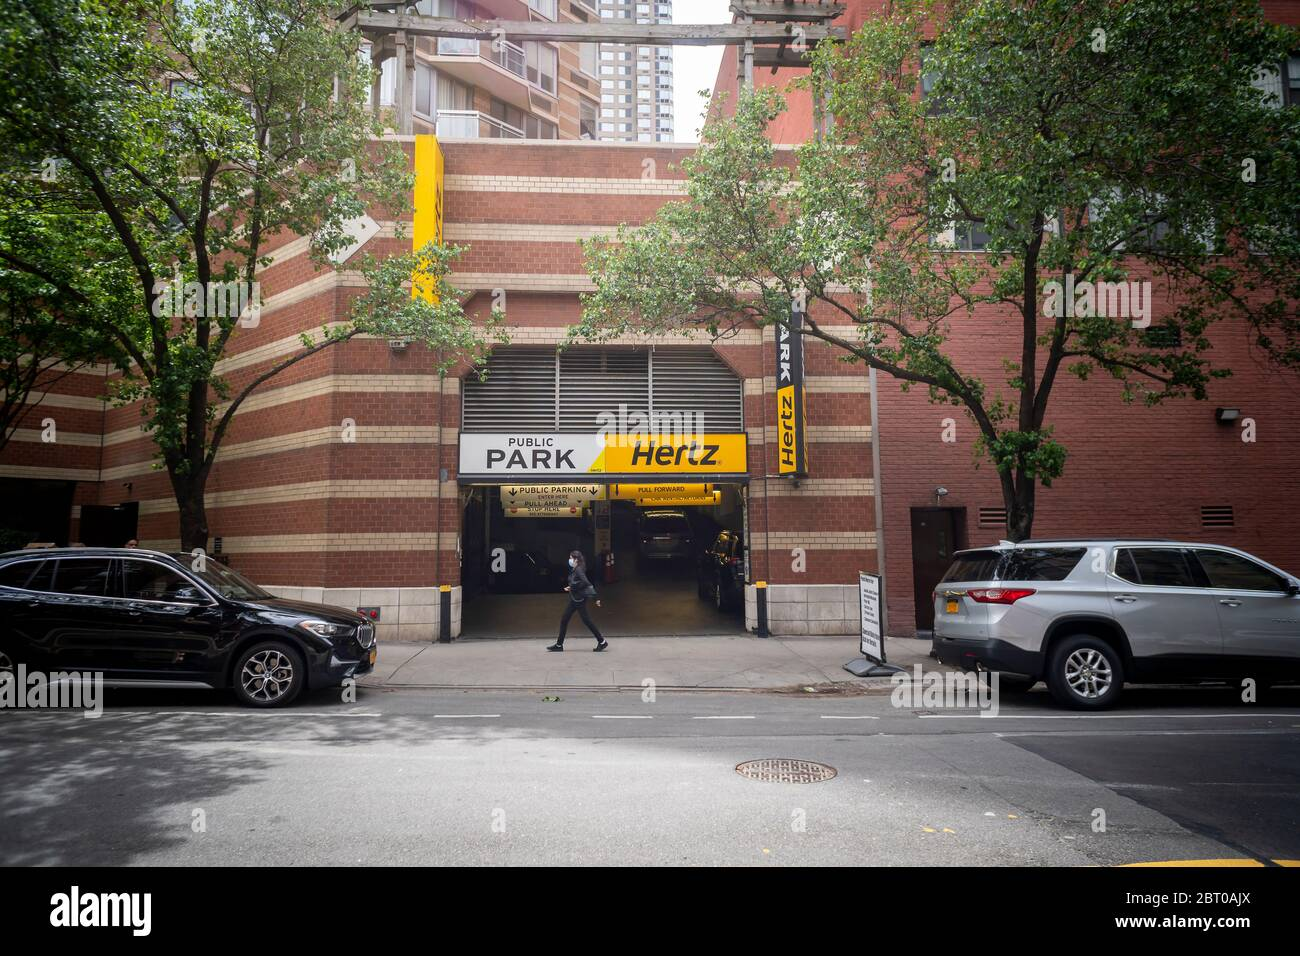 A garage renting Hertz vehicles in New York on Tuesday, May 19, 2020. Hertz is reported to be preparing for a possible bankruptcy of its U.S. division.(© Richard B. Levine) Stock Photo